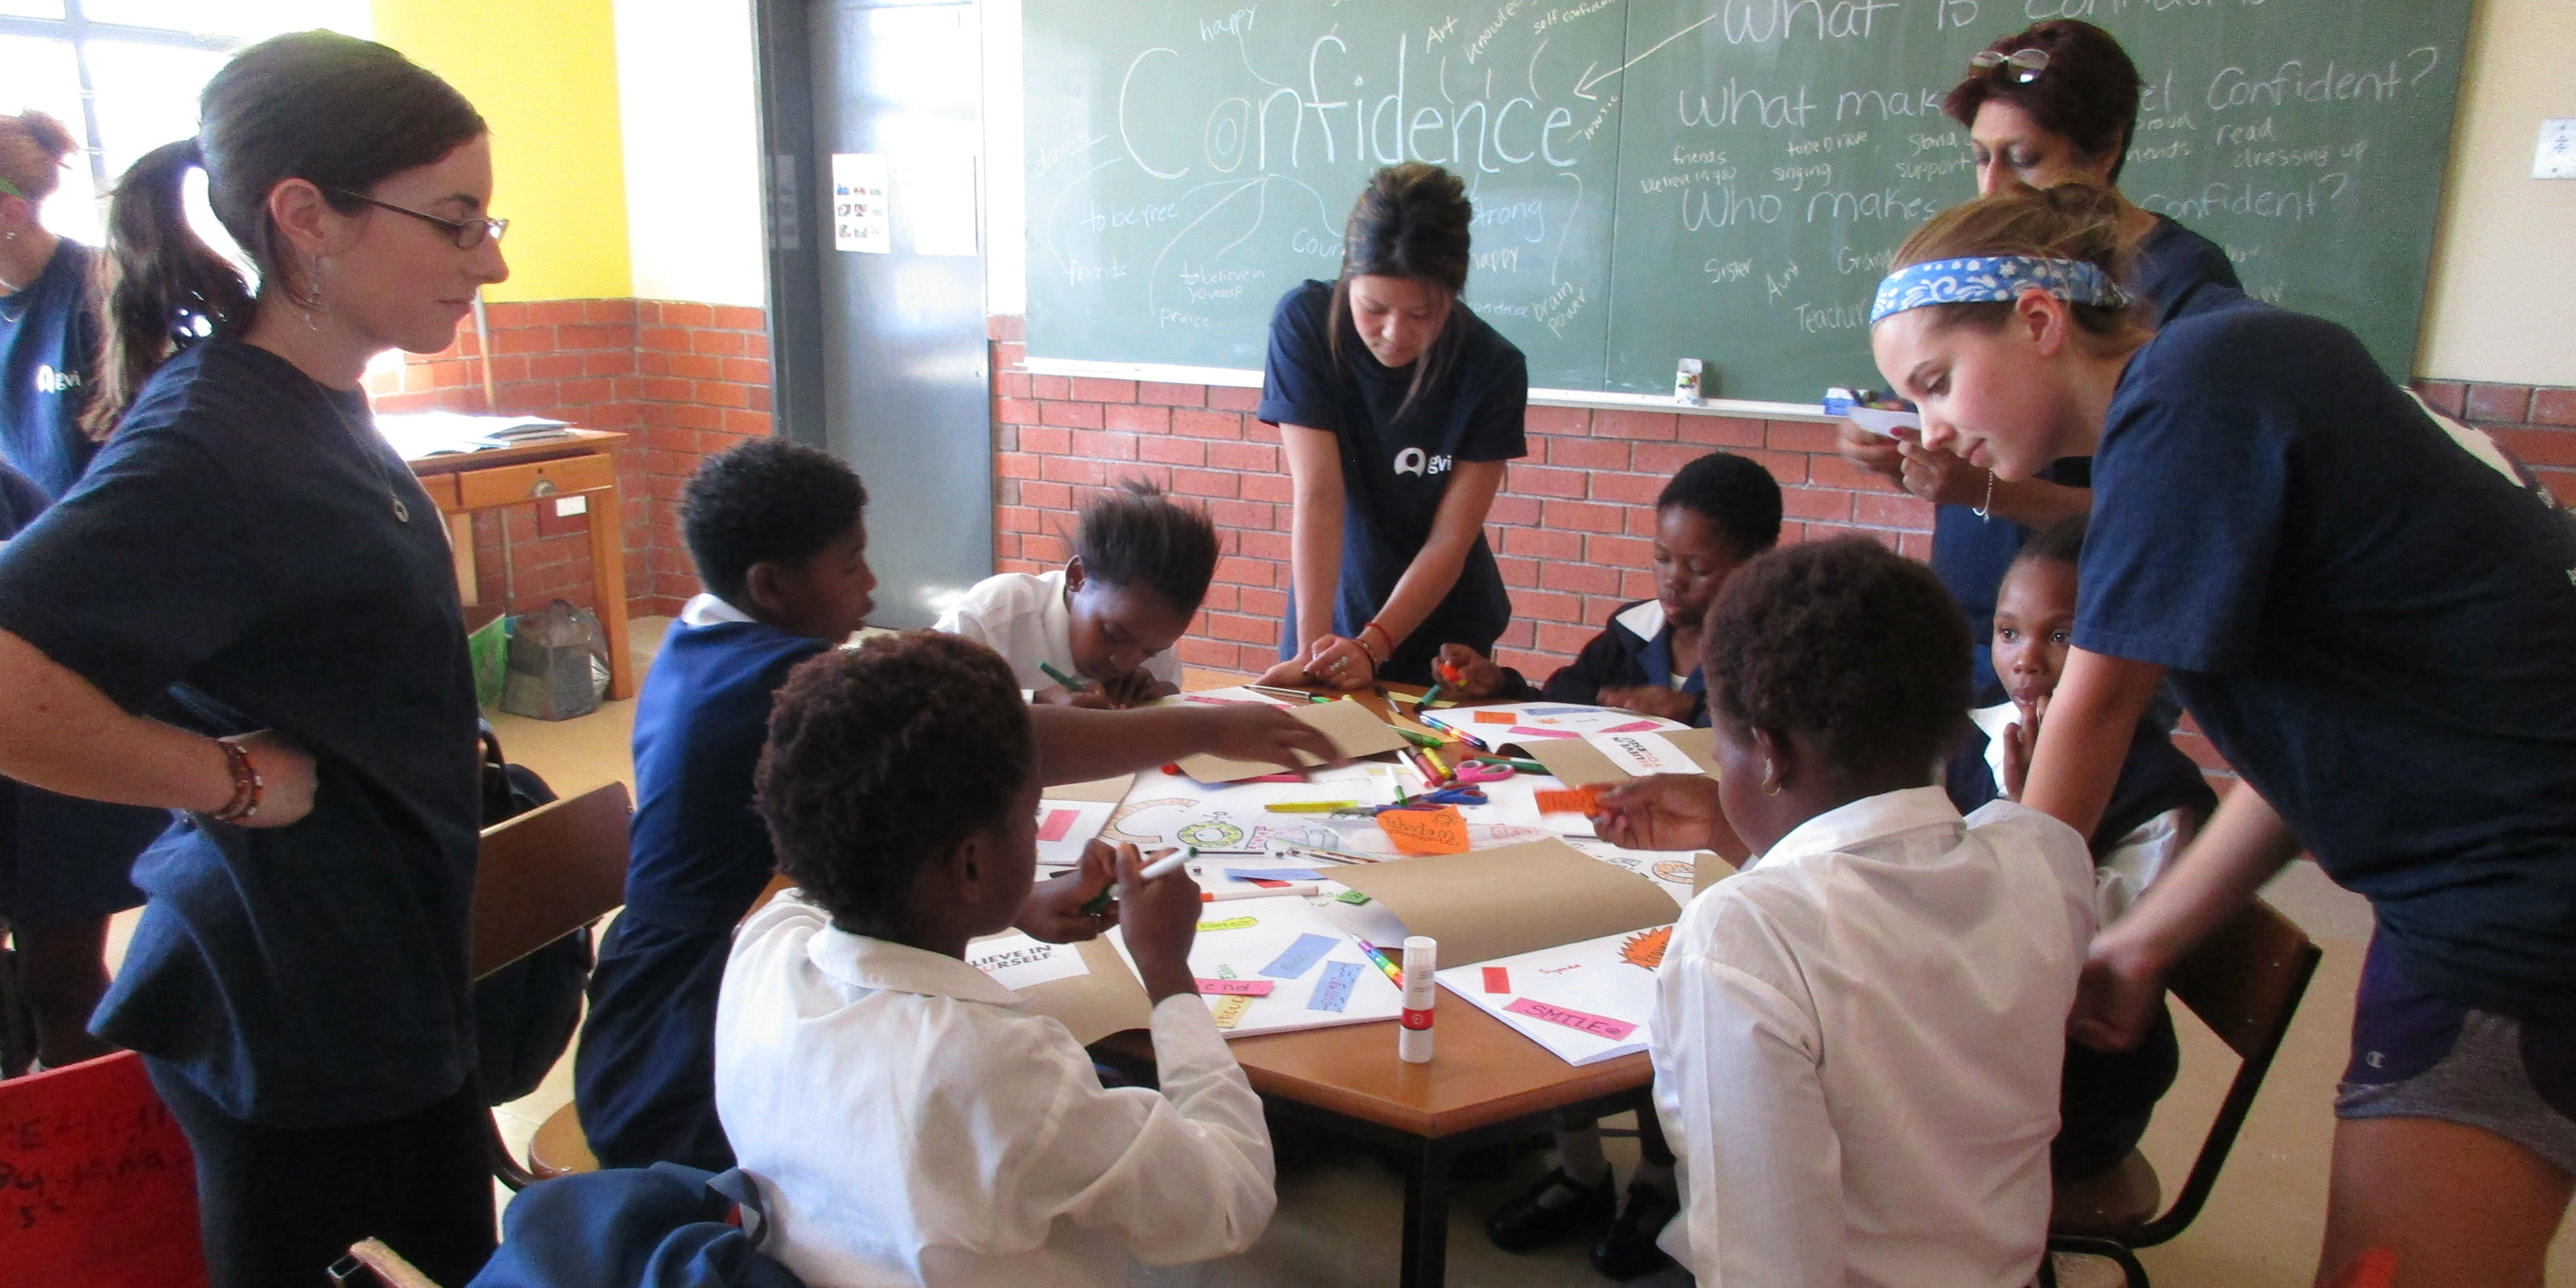 GVI participants work with a group of learners. By increasing educational capacity and support, GVI seeks to promote gender equality in education.